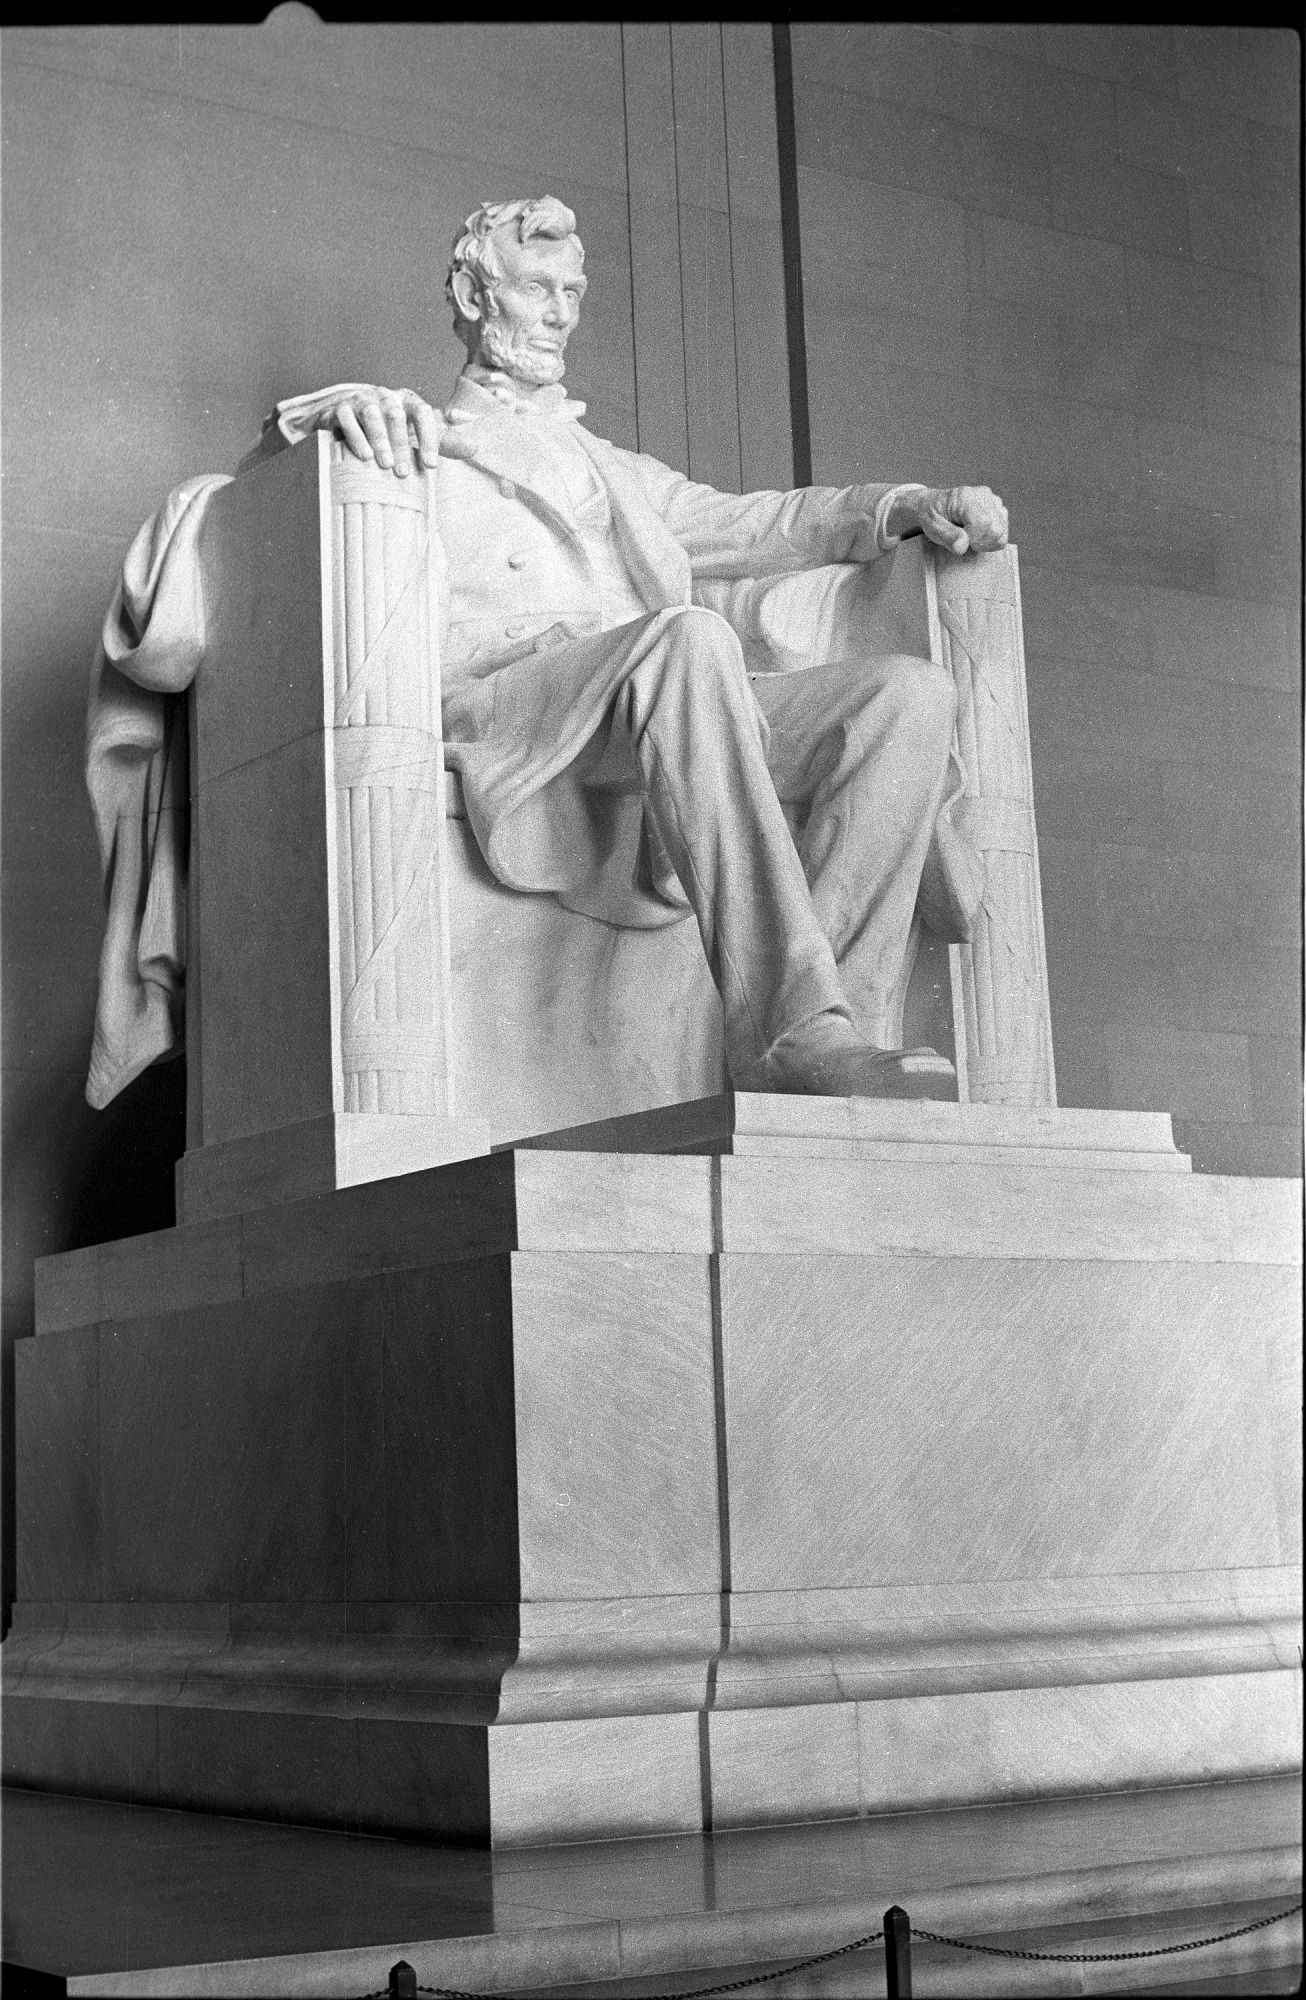 Lincoln Memorialhttp://ids.si.edu/ids/deliveryService?id=SAAM-C0000013_04